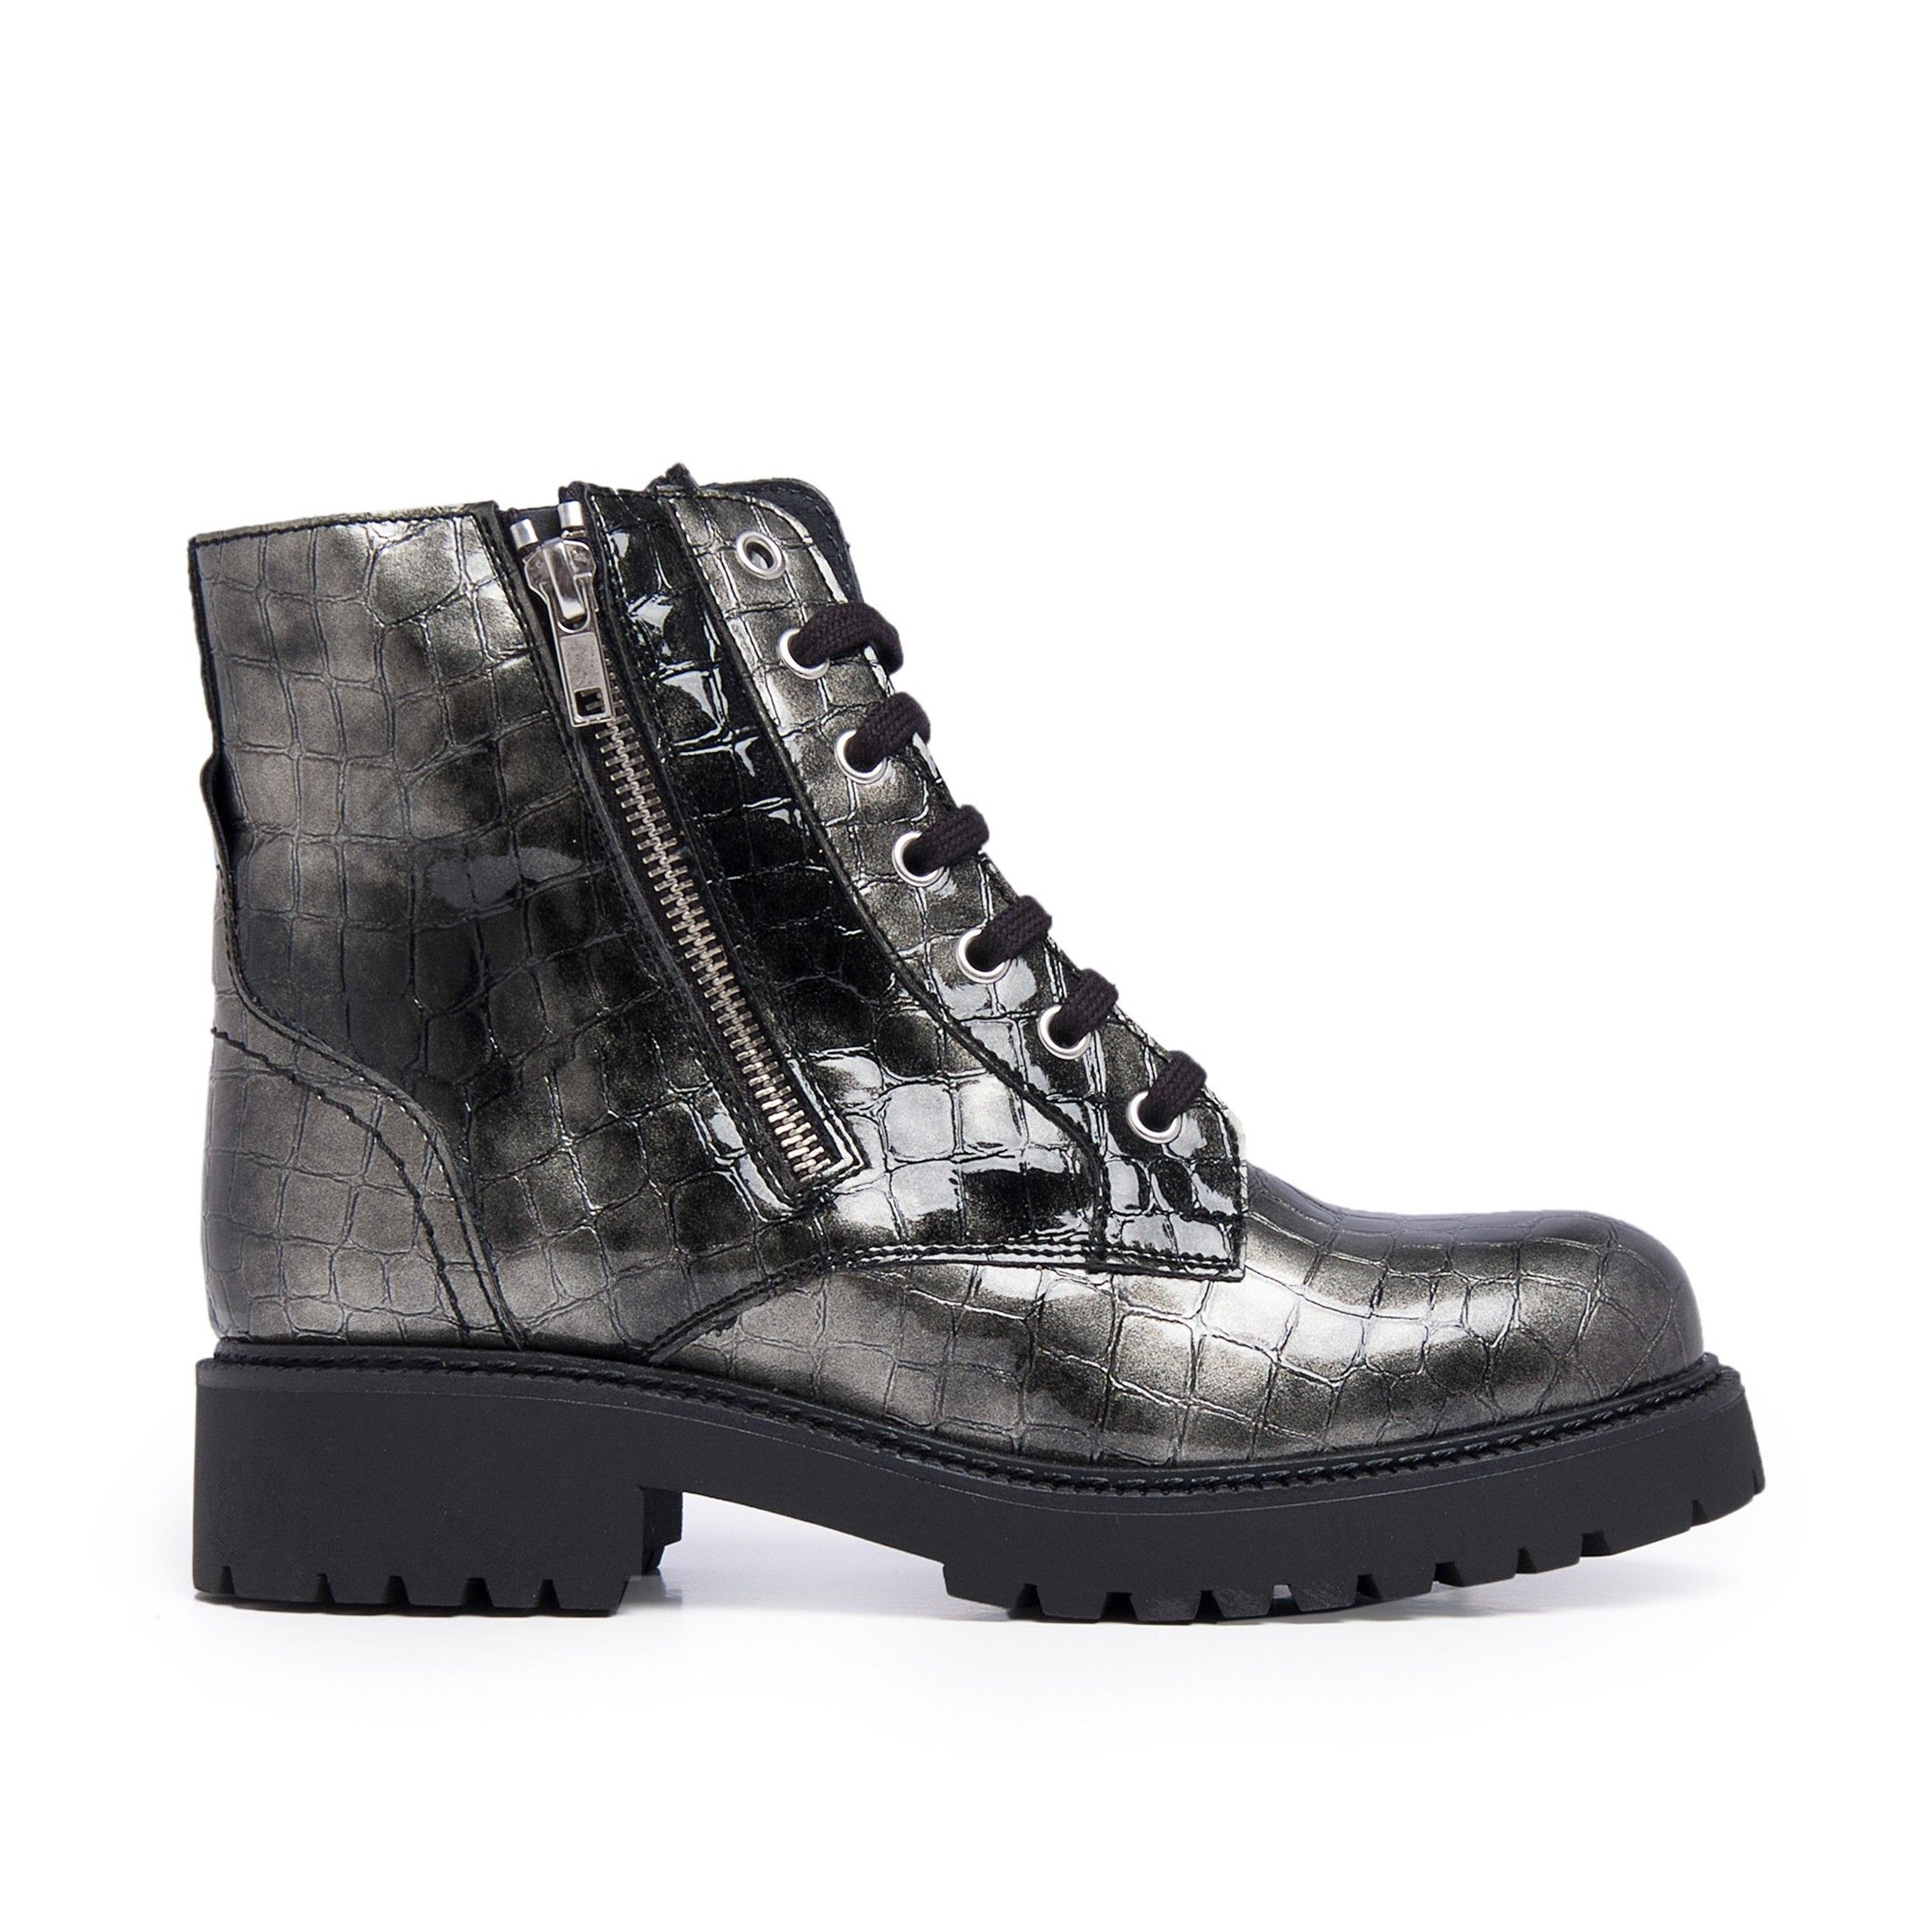 María Barceló Womens Winter Lace-Up Boots